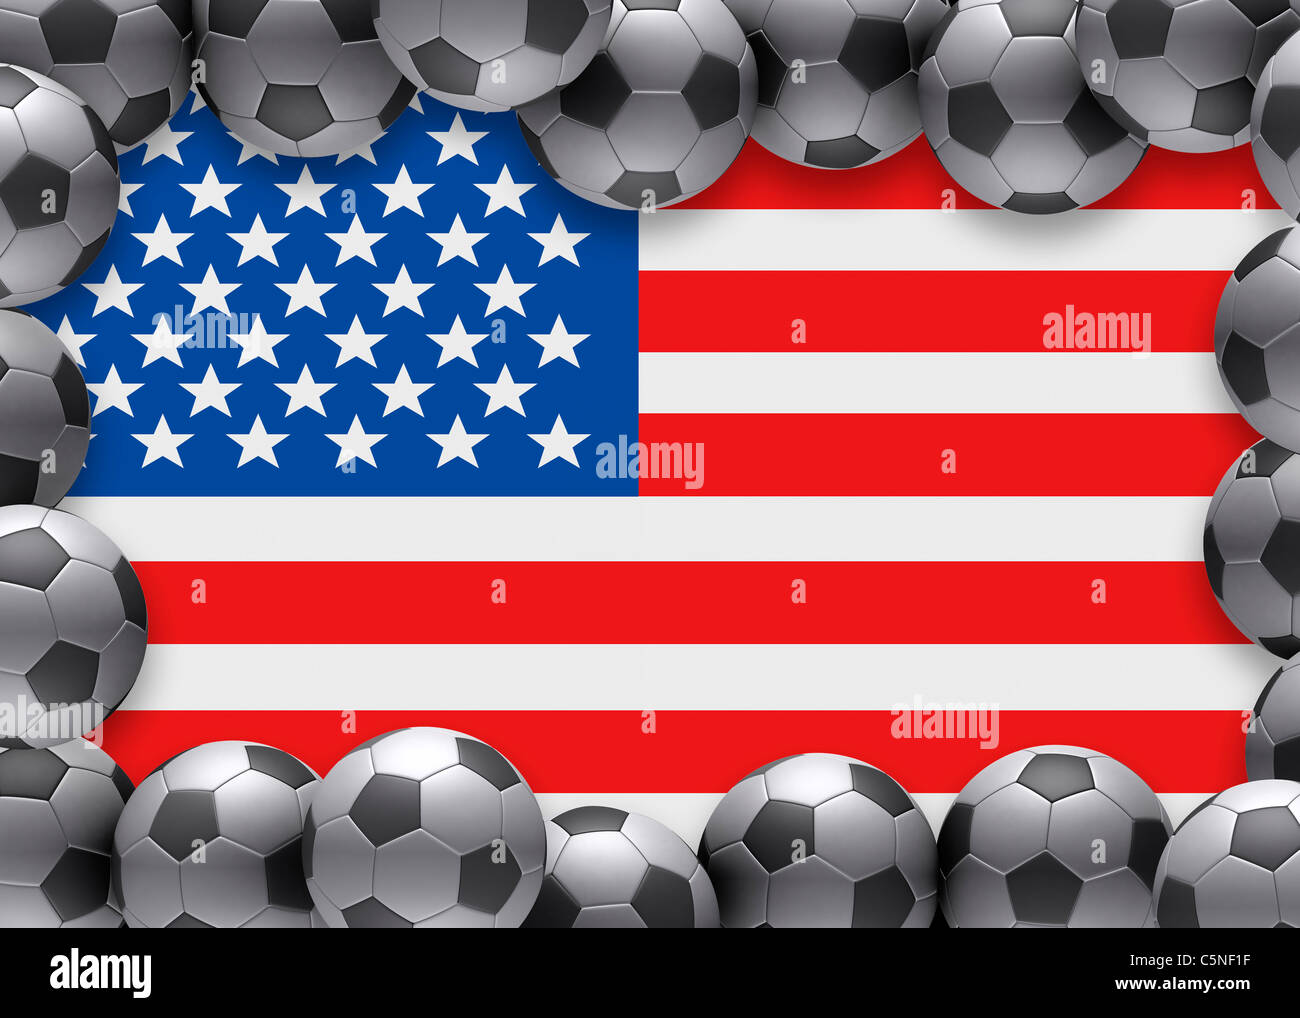 Flag of United States of America USA US football soccer - Stock Image